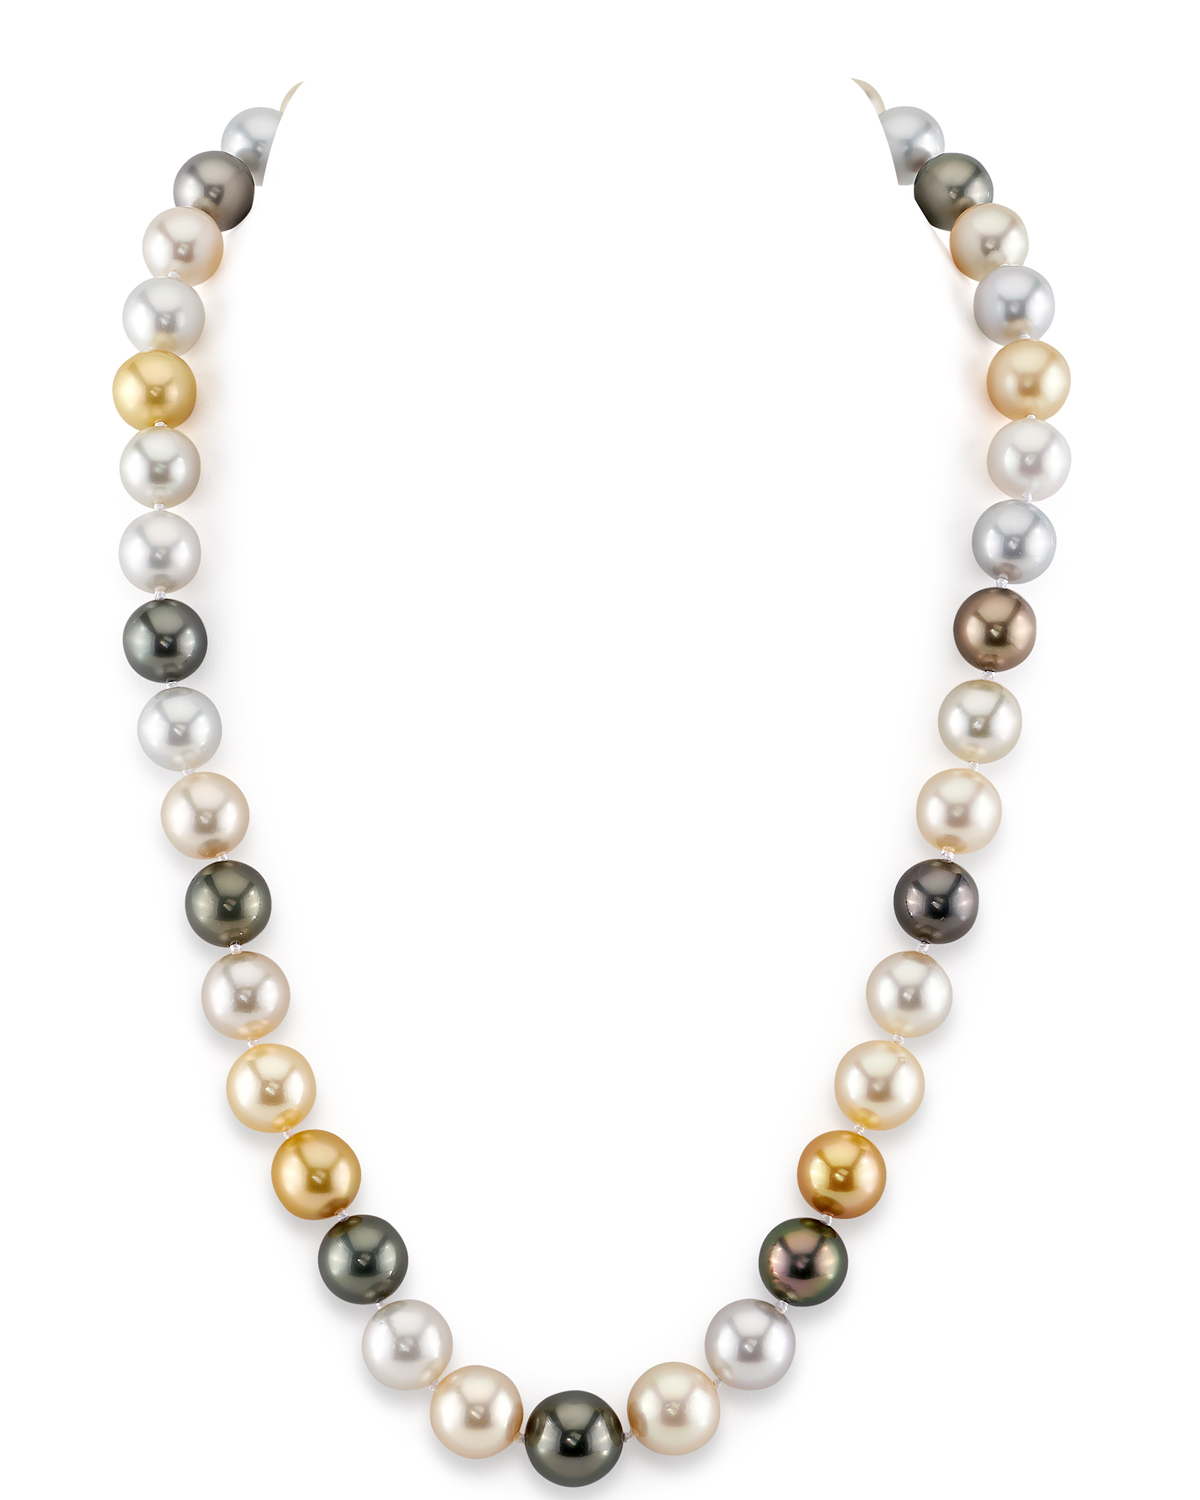 9-11mm South Sea Multicolor Pearl Necklace - AAAA Quality